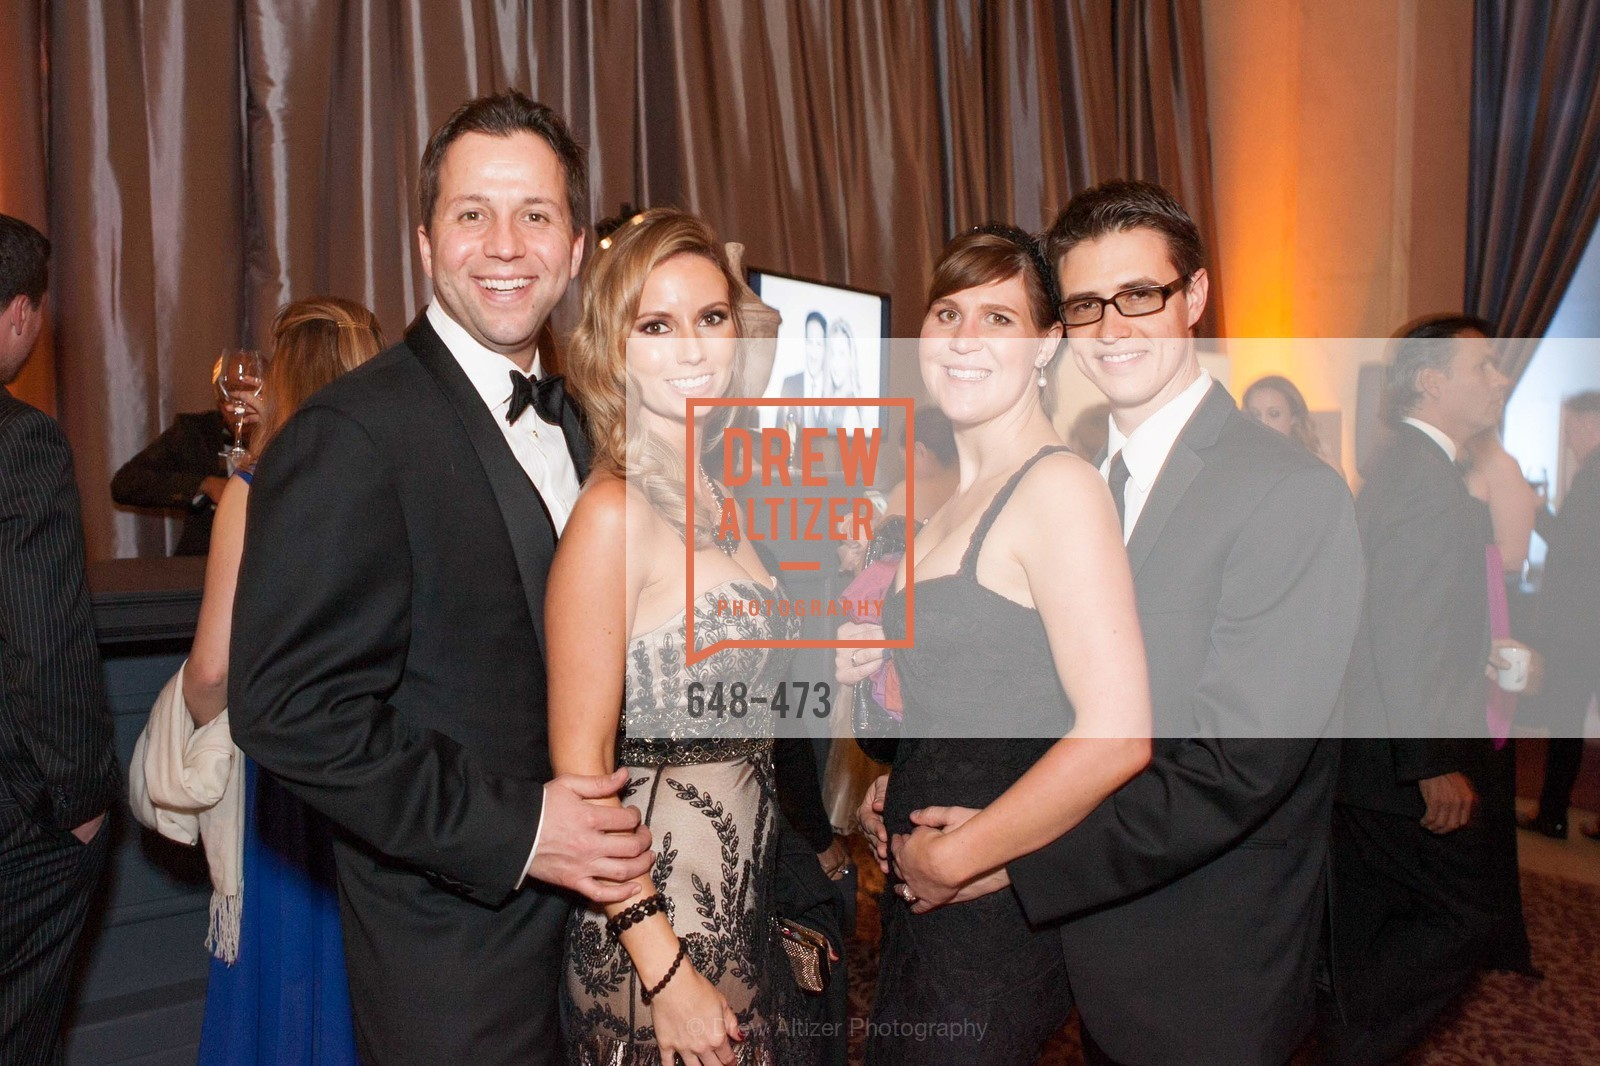 Rob Pearson, Kelly Pearson, Catherine Hill, Thomas Hill, ENCORE! at San Francisco BALLET'S 2014 Season Opening Night Gala, US. US, January 22nd, 2014,Drew Altizer, Drew Altizer Photography, full-service agency, private events, San Francisco photographer, photographer california